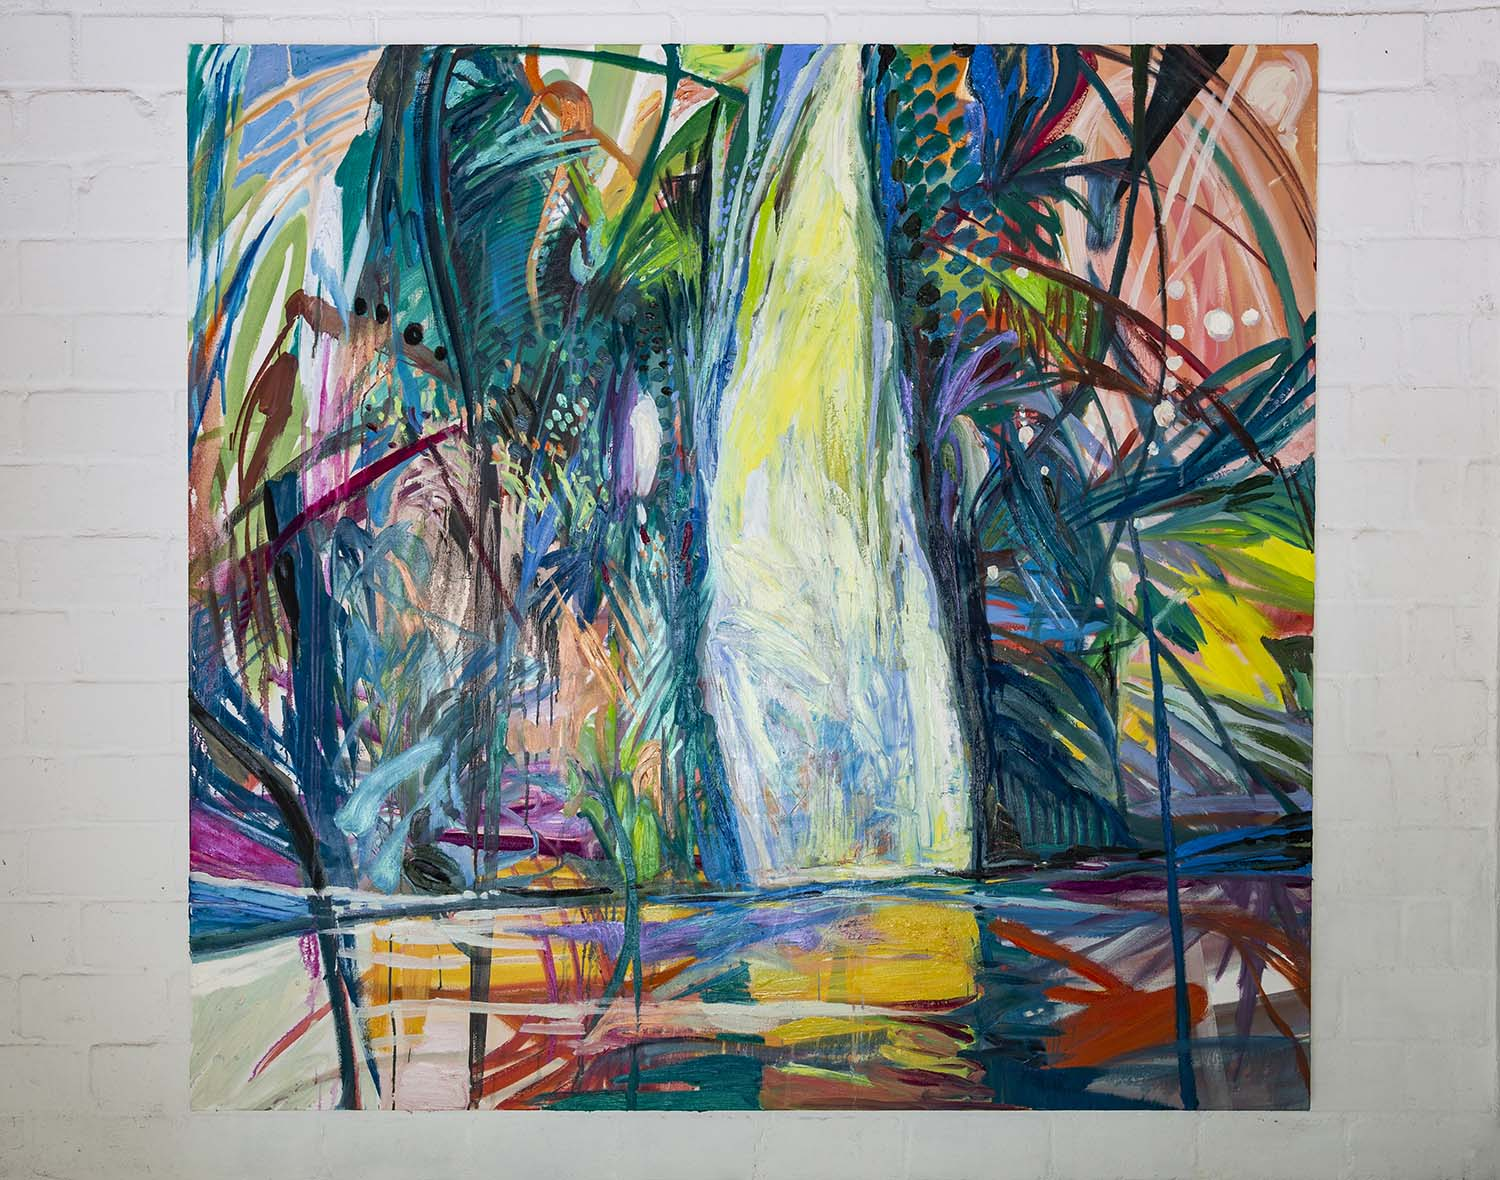 Sin Park, Clearing, 180x190cm, acrylic, oil pastel, oil on canvas, 2018